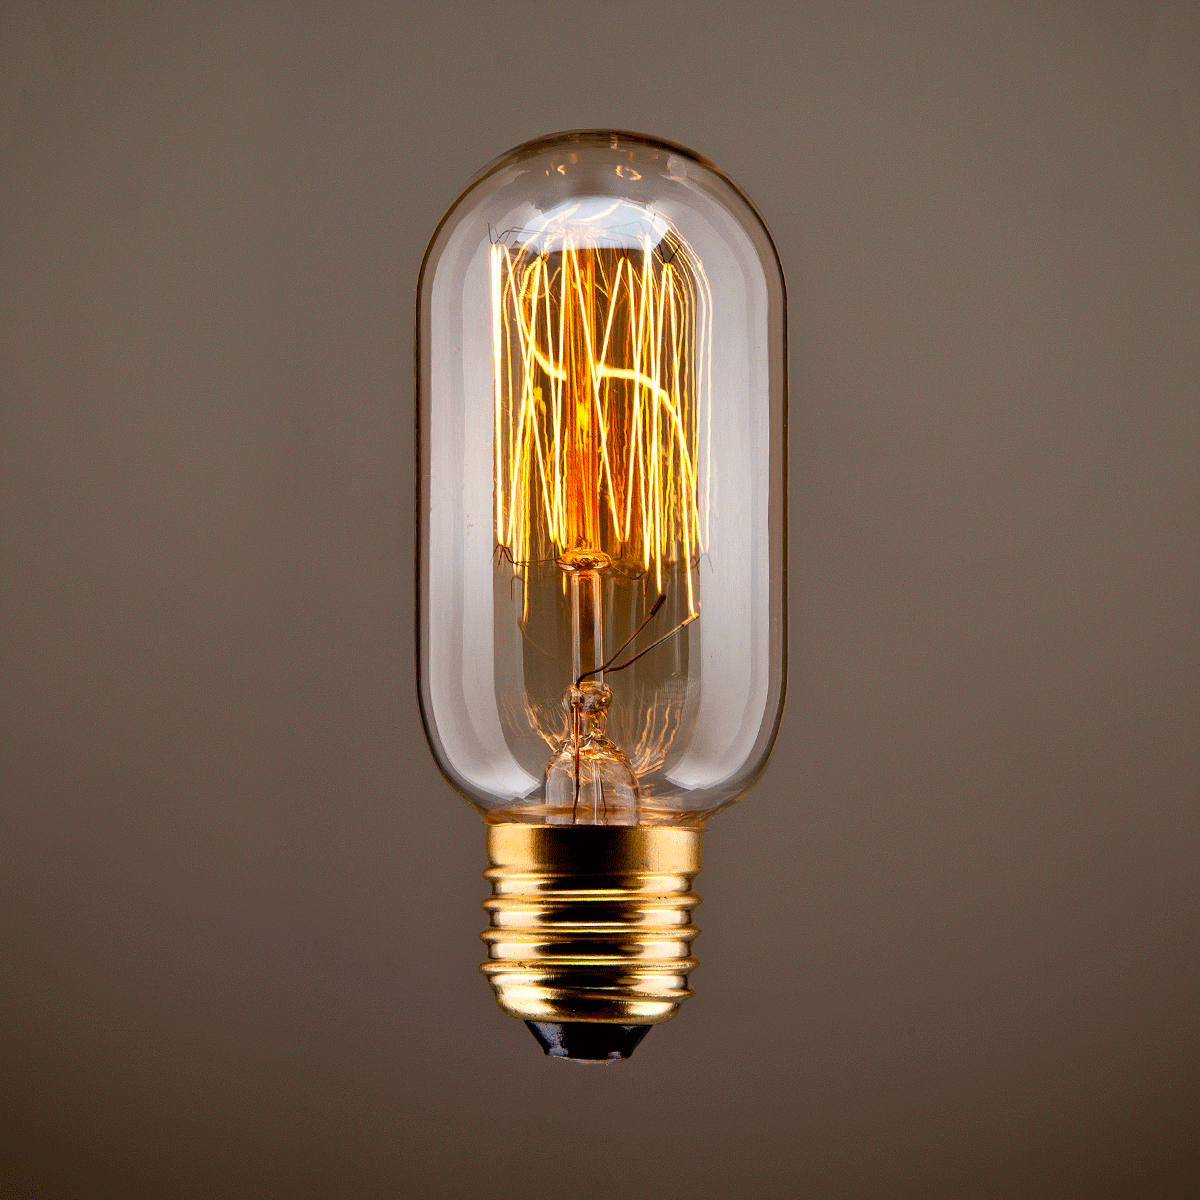 Vintage Tube Squirrel Filament Bulb